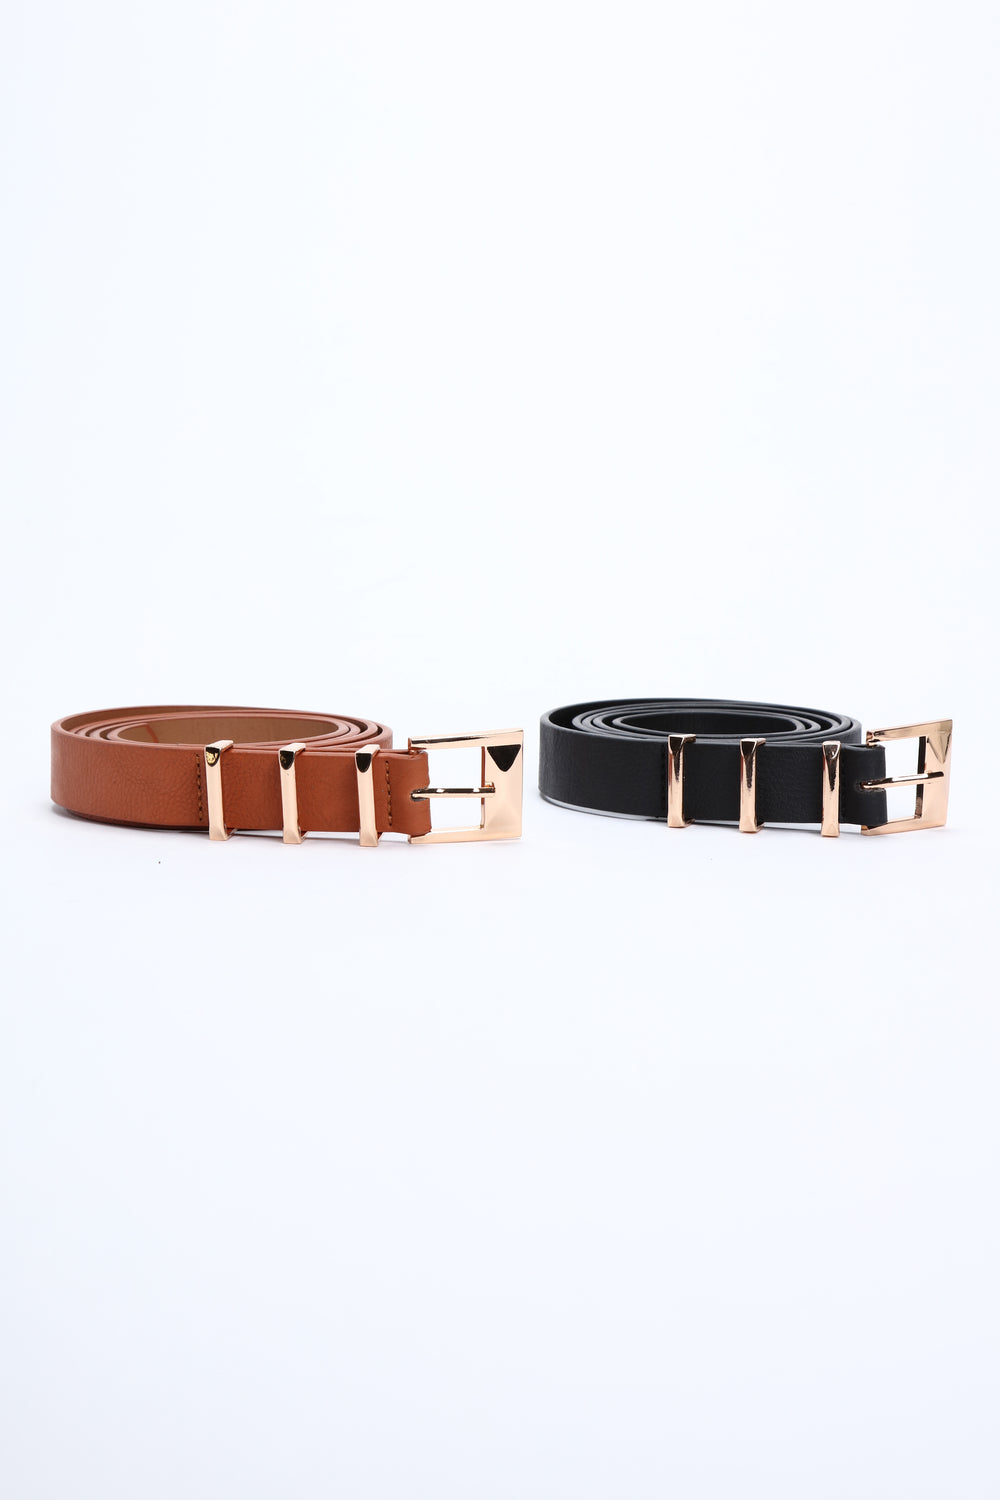 ll Eyes On Me Two Pack Belt - Black/Combo